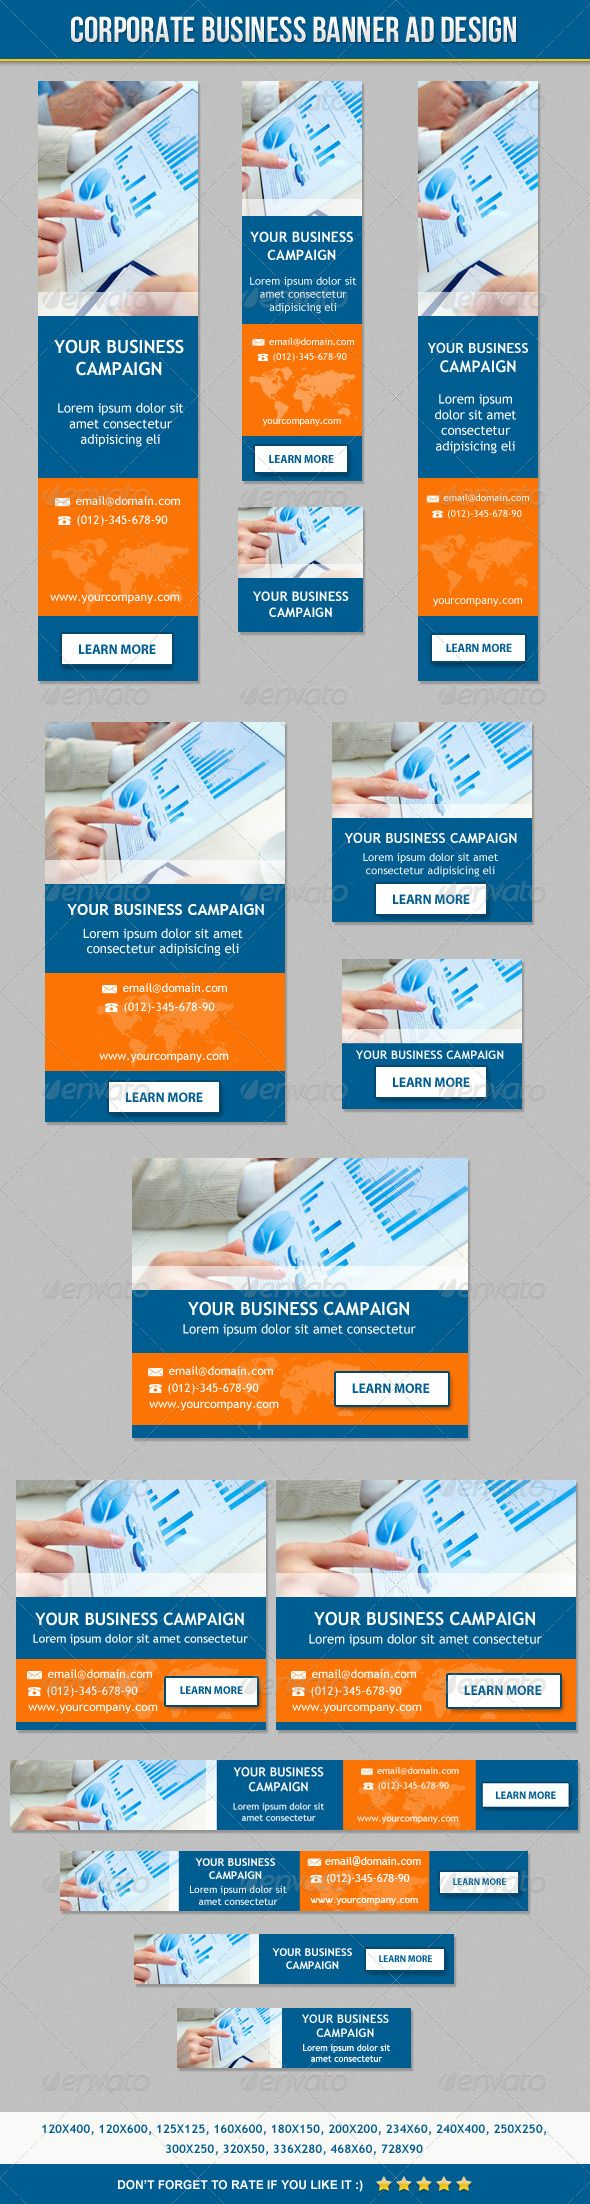 215 best images about Banner on Pinterest